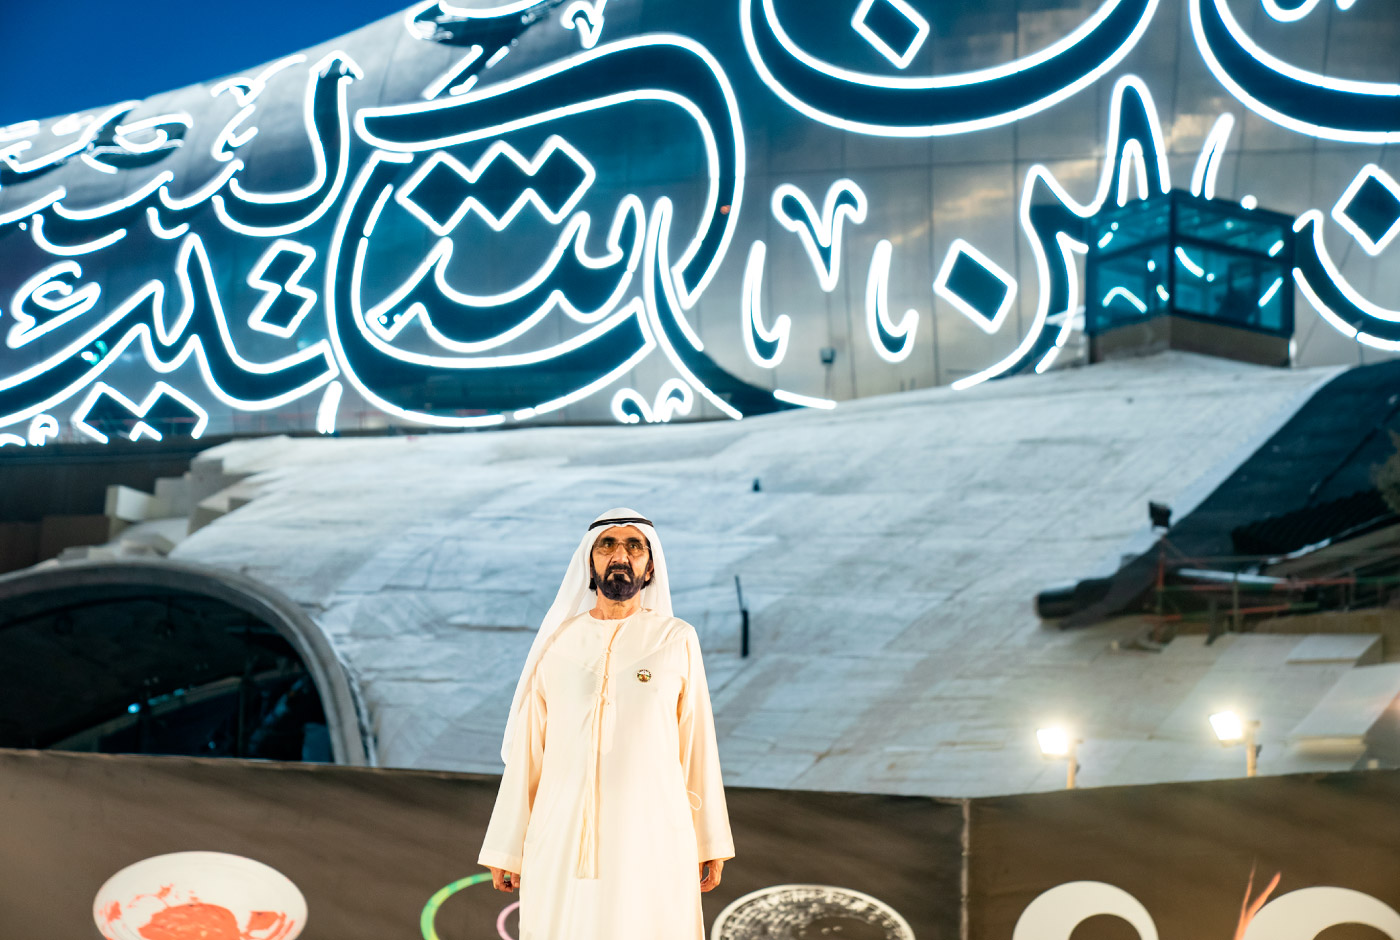 HH Sheikh Mohammad Bin Rashid in front of the Museum of the Future